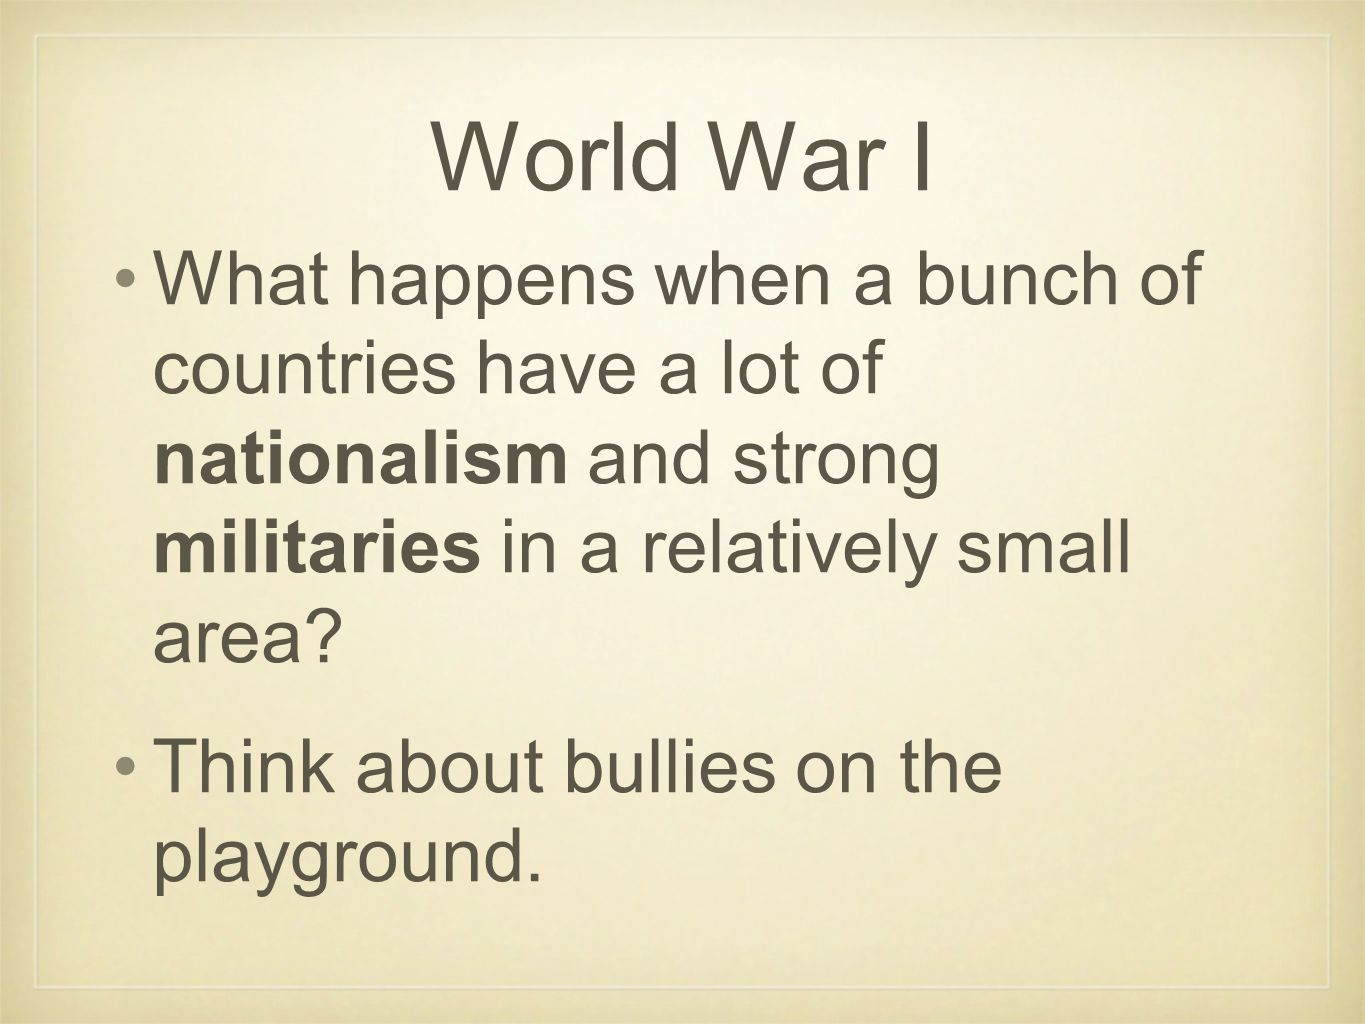 World War I What happens when a bunch of countries have a lot of nationalism and strong militaries in a relatively small area